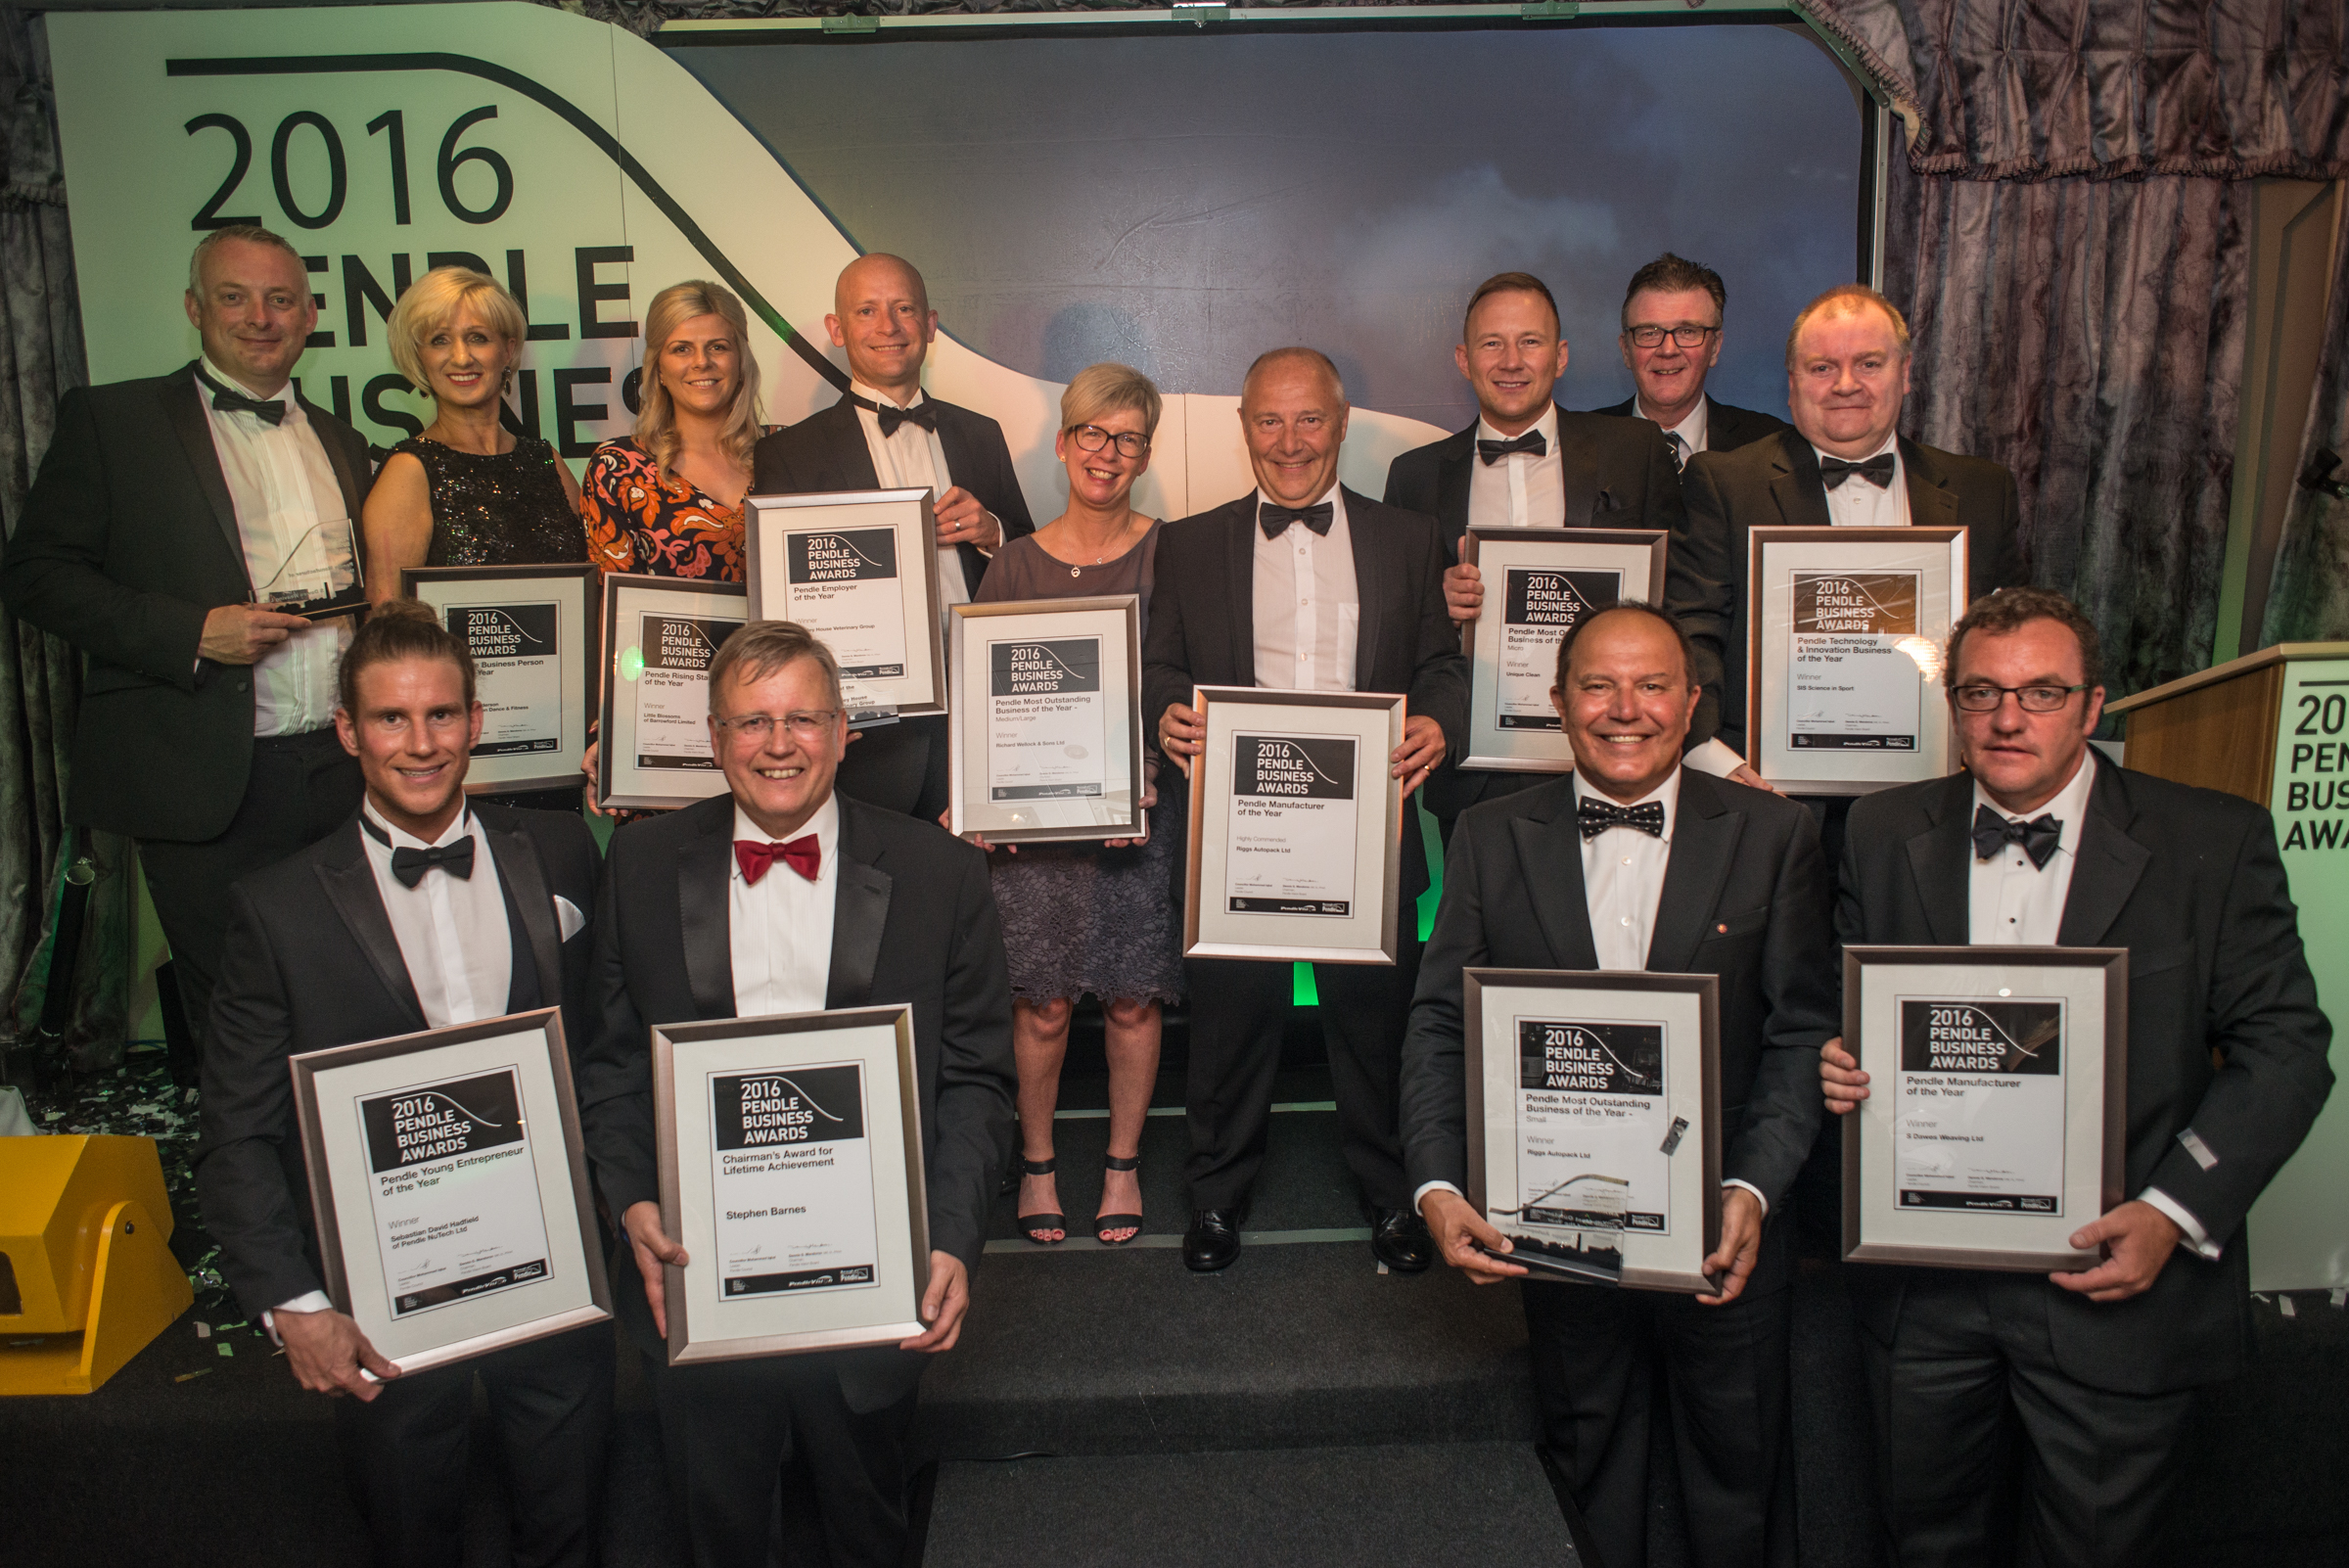 The Pendle Business Awards winners for 2016. Picture by Andy Ford